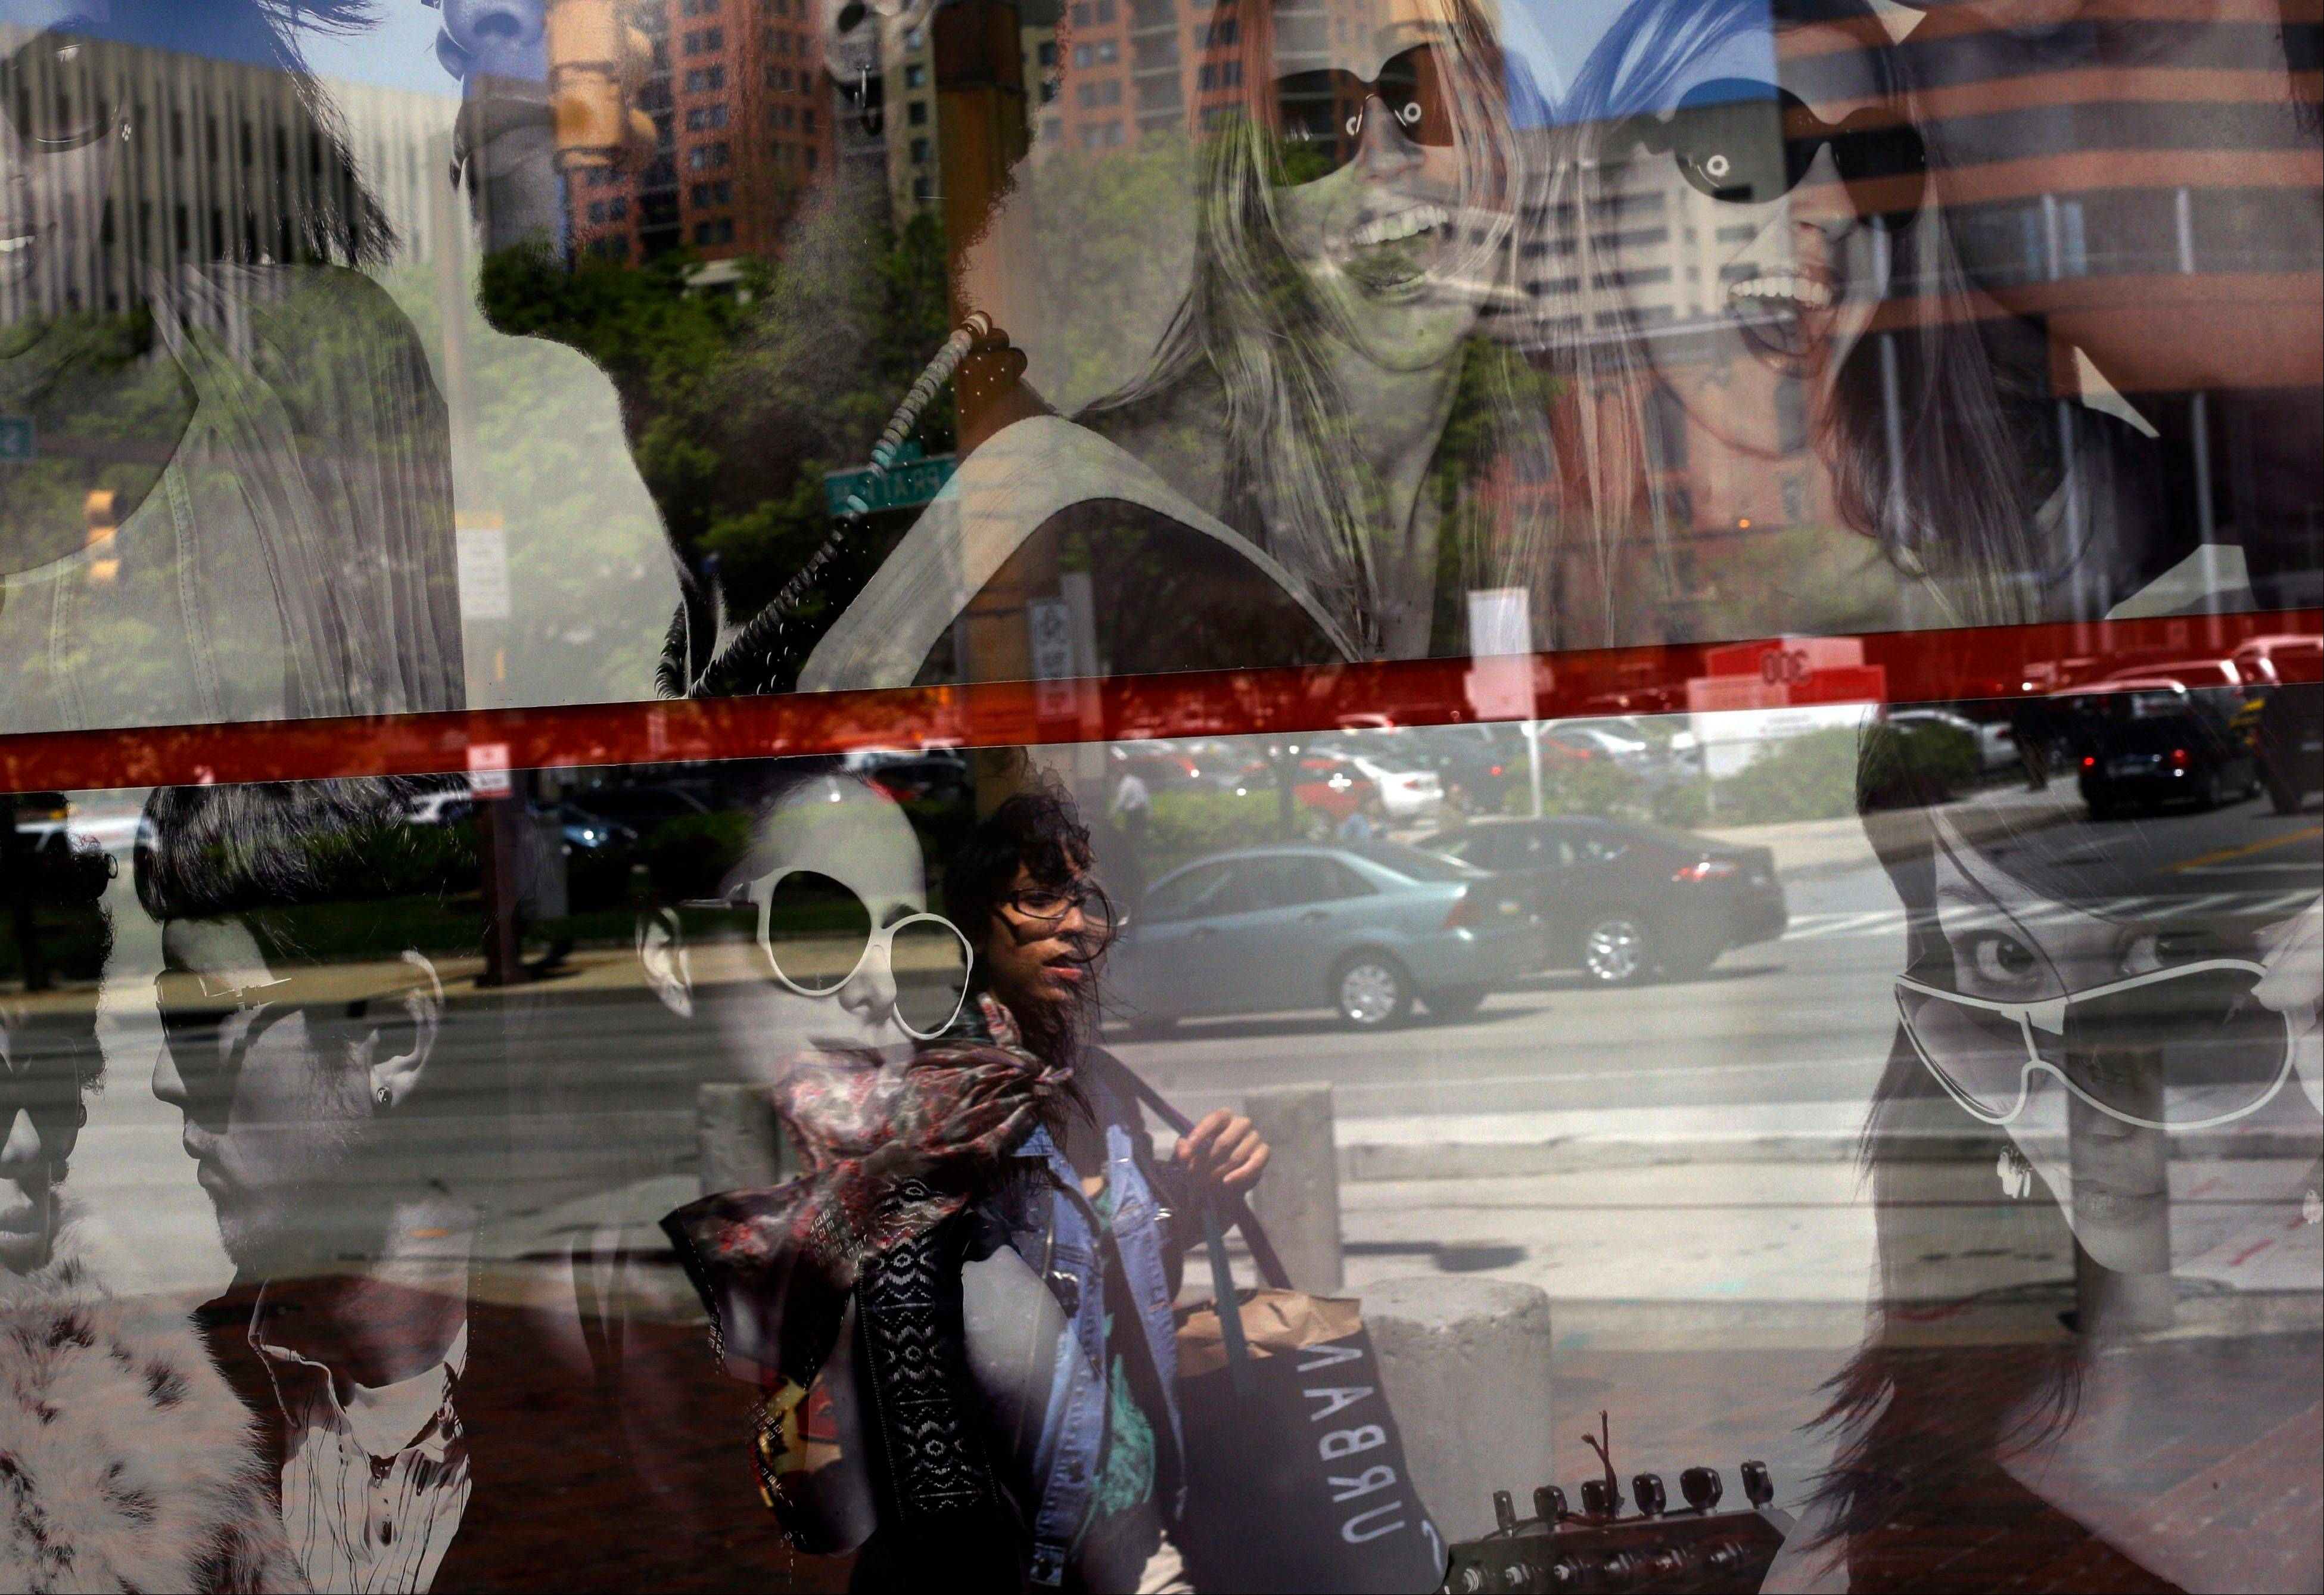 Associated Press/April 25, 2013 file photo A woman is reflected in a retail store�s window display in Baltimore. The American economy and job market are moving in the right direction, just not very quickly.